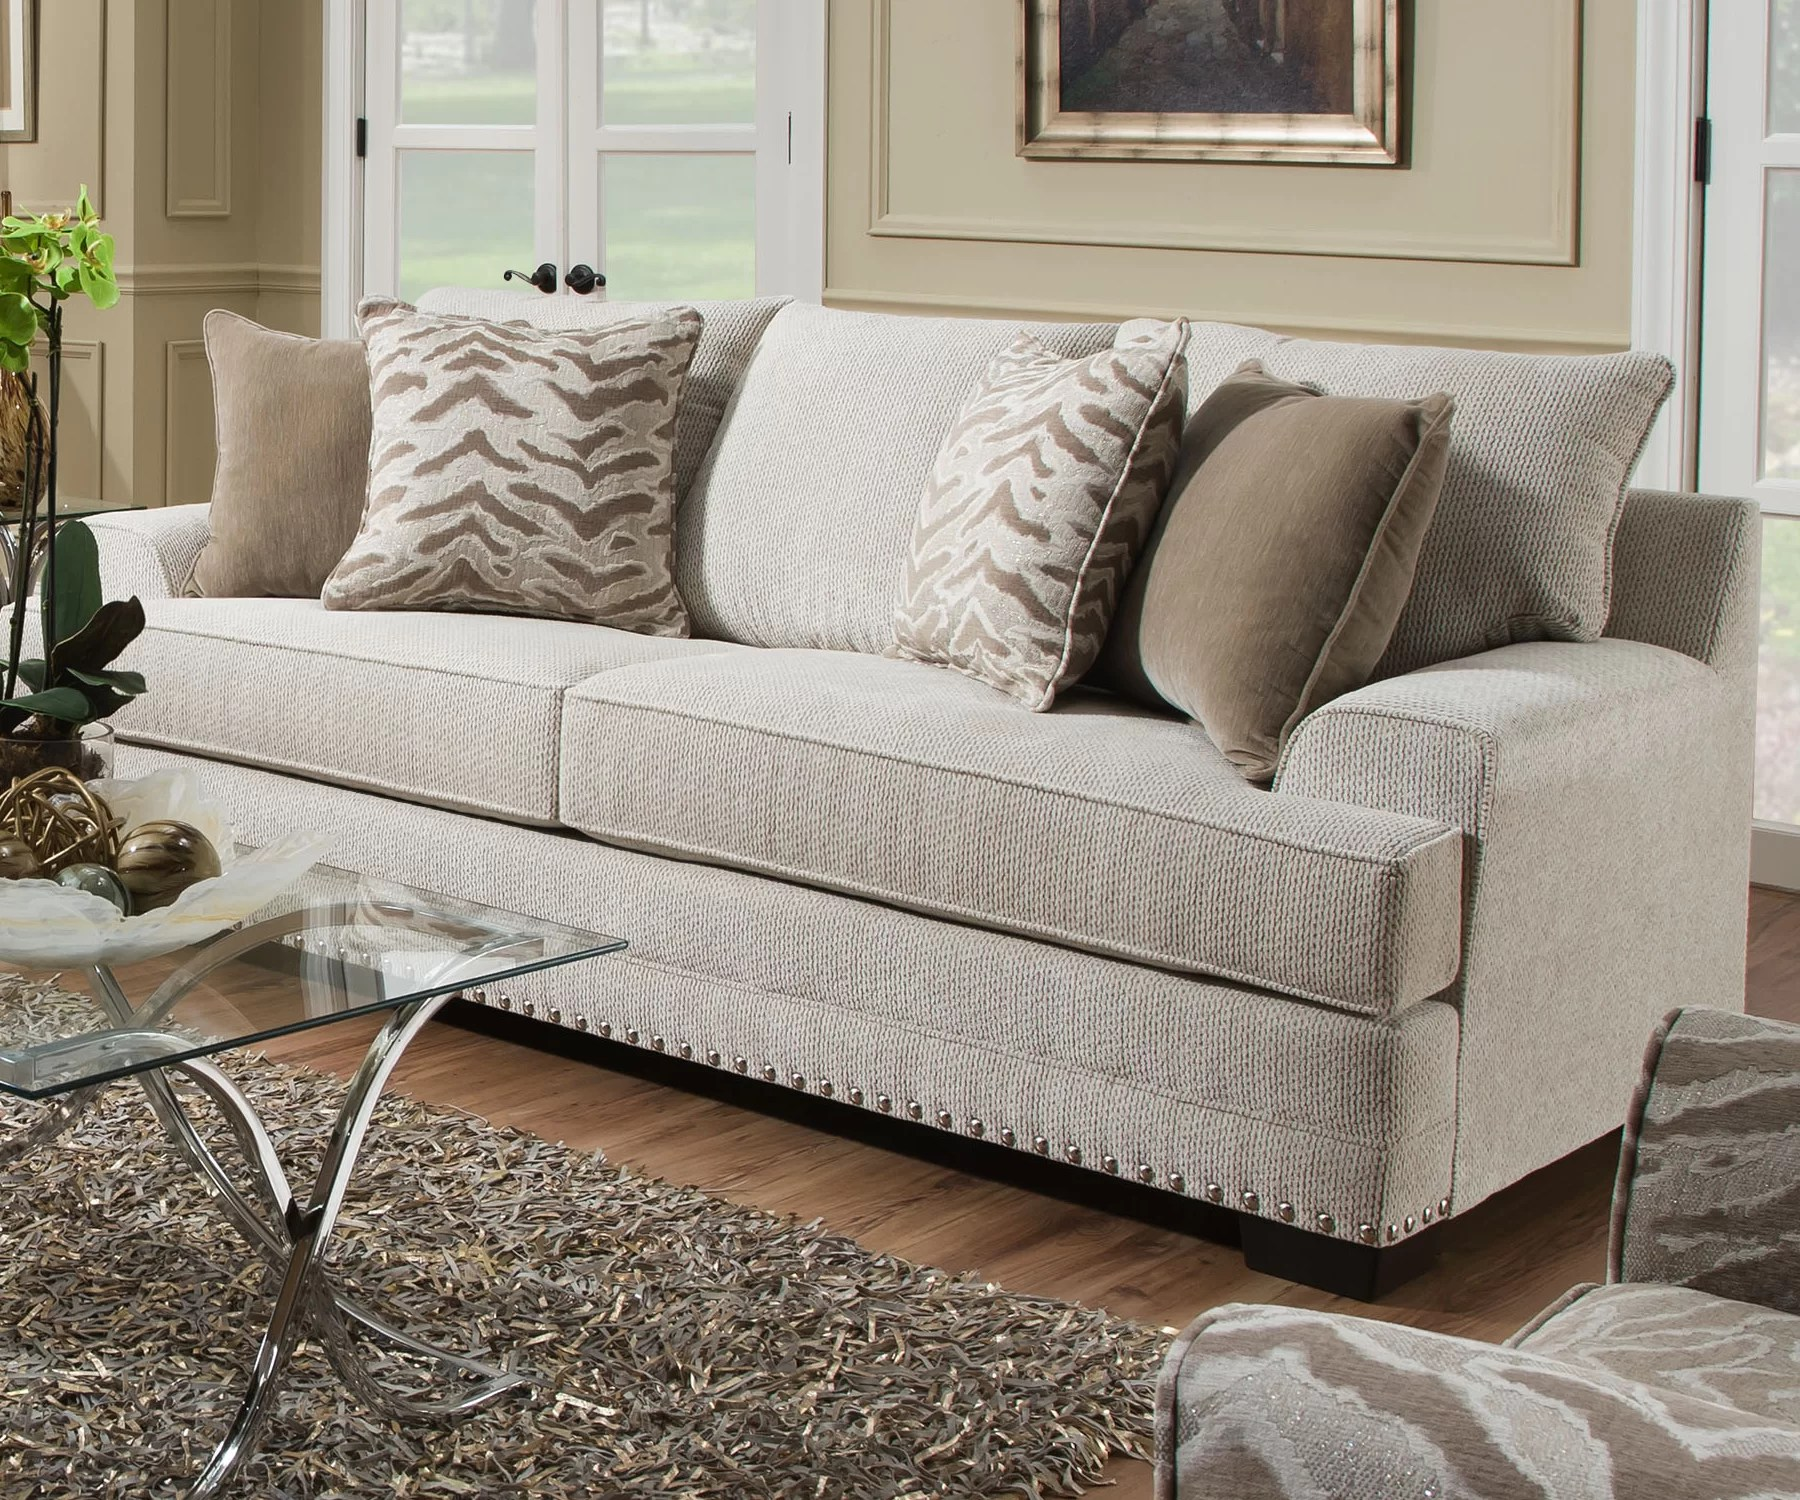 sofa frames for upholstery disco clic clac bed review surratt by simmons reviews joss main